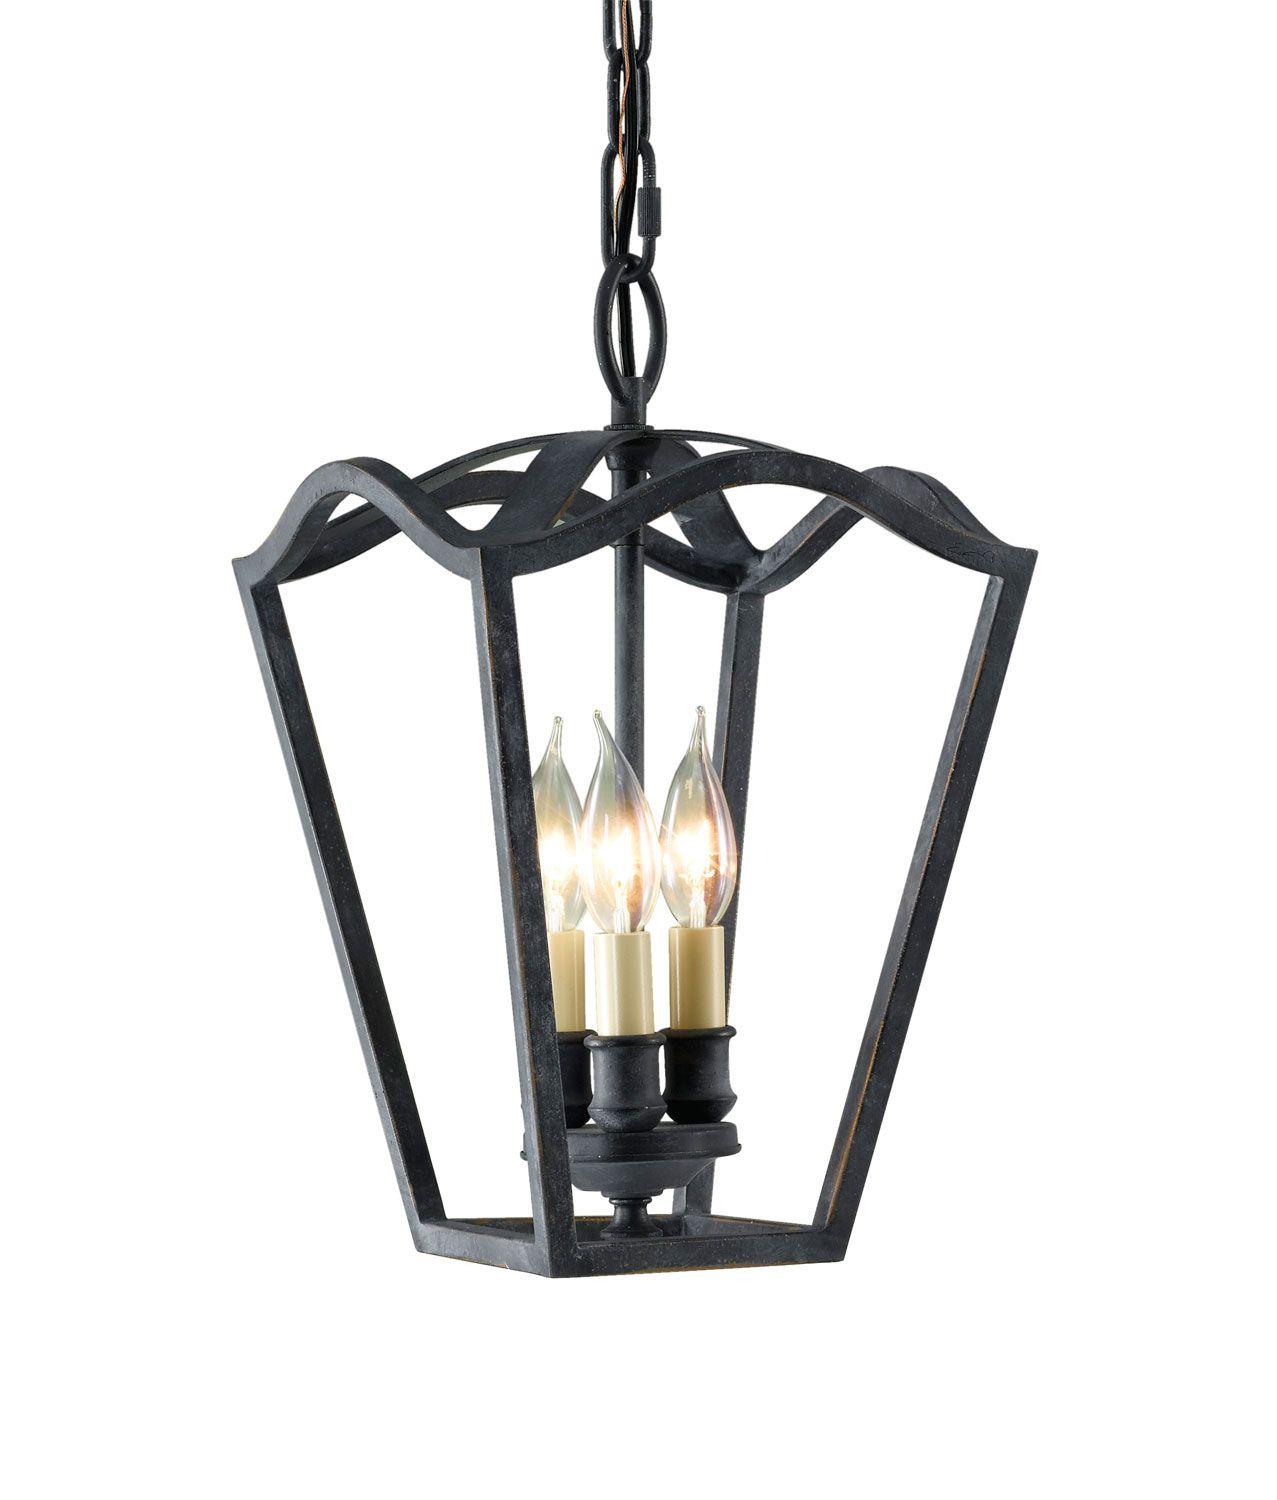 Lowcountry lighting center chandeliers u pendants pinterest